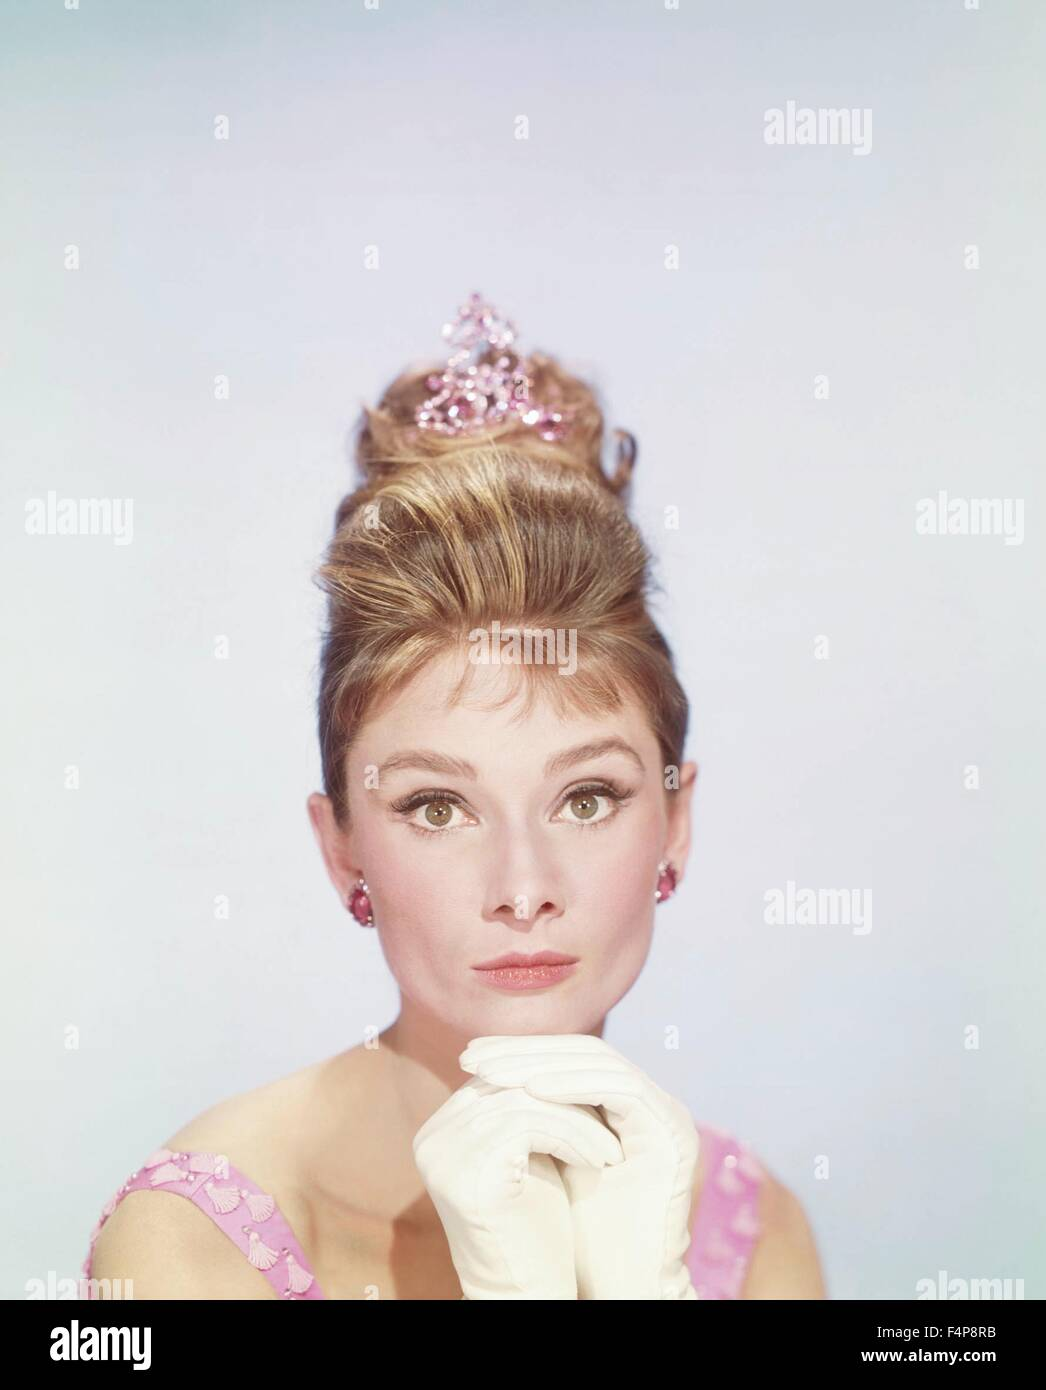 Audrey Hepburn / Breakfast at Tiffany's 1961 directed by Blake Edwards - Stock Image